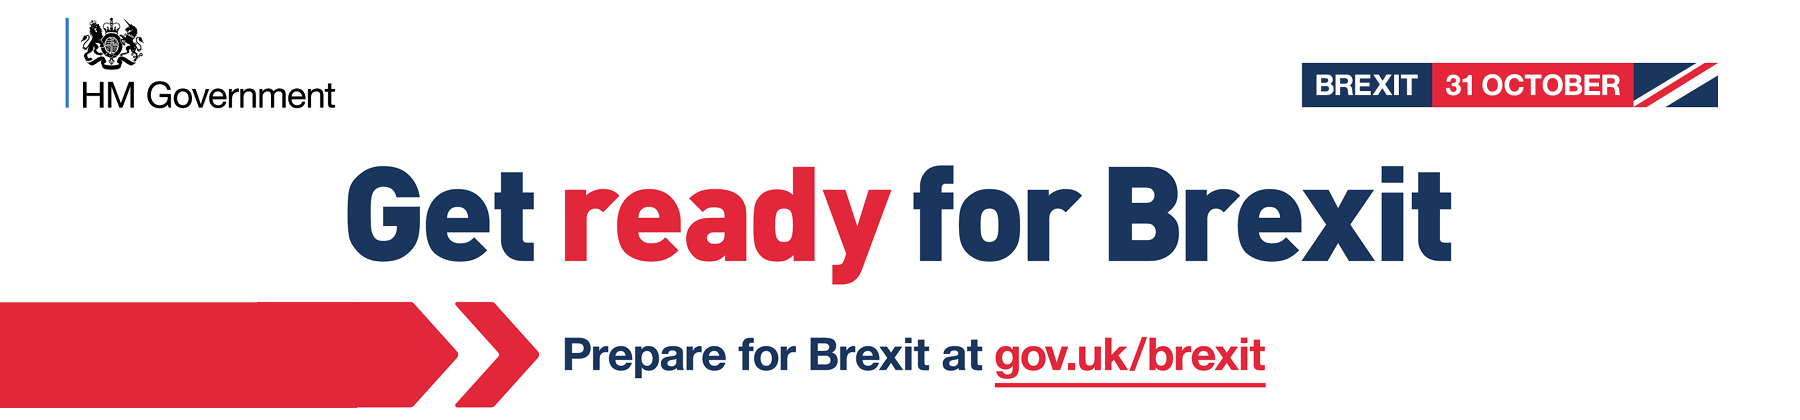 Banner promoting guidance on getting prepared for Brexit